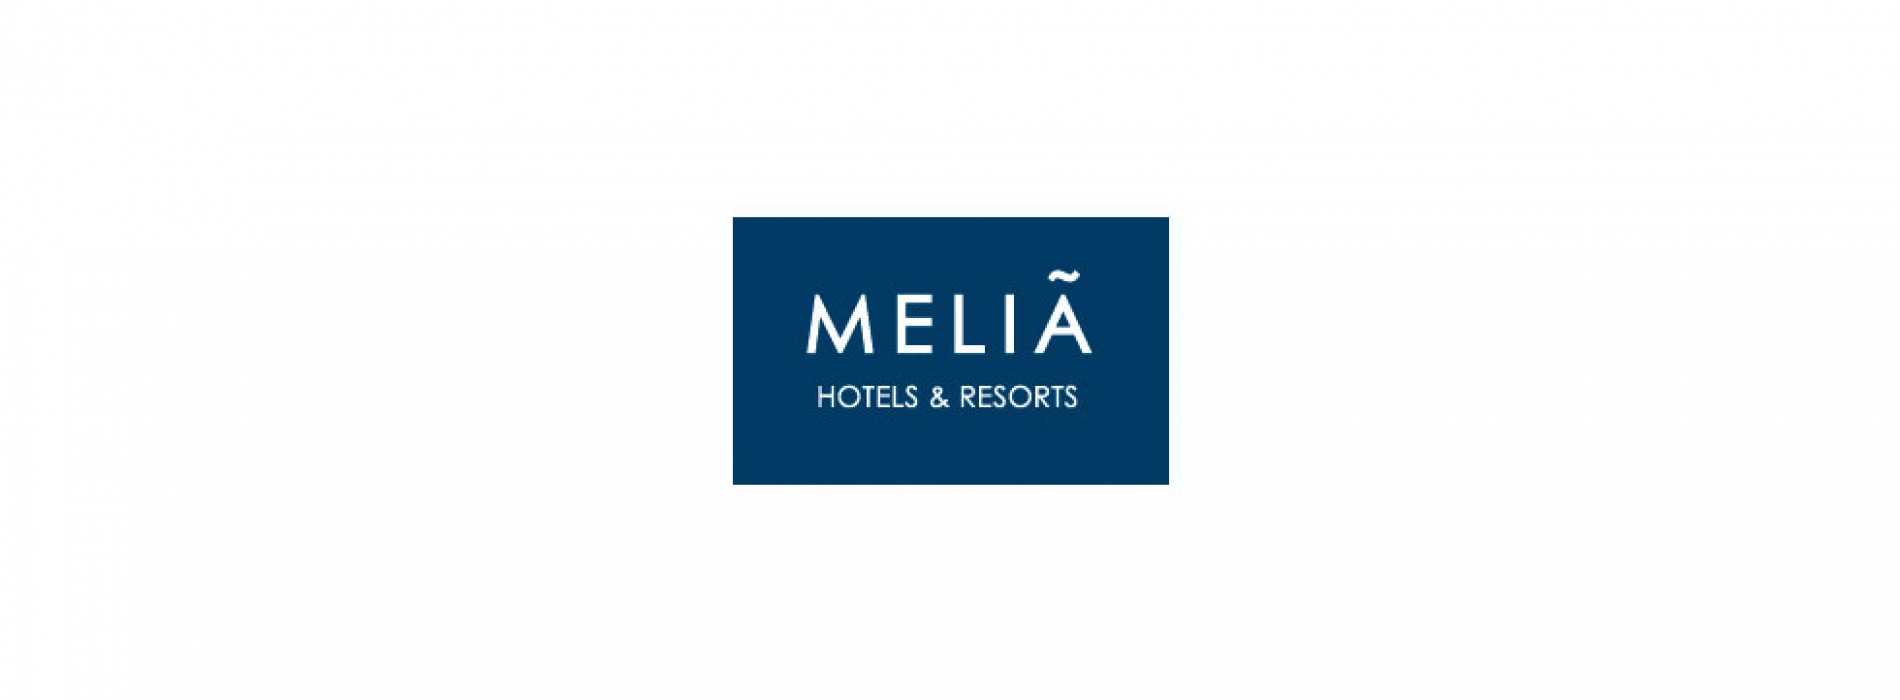 "Melia Hotels International awarded the prestigious ""Hall of Fame Award"" at the Hotel Investors Conference Europe (Hot.E)"